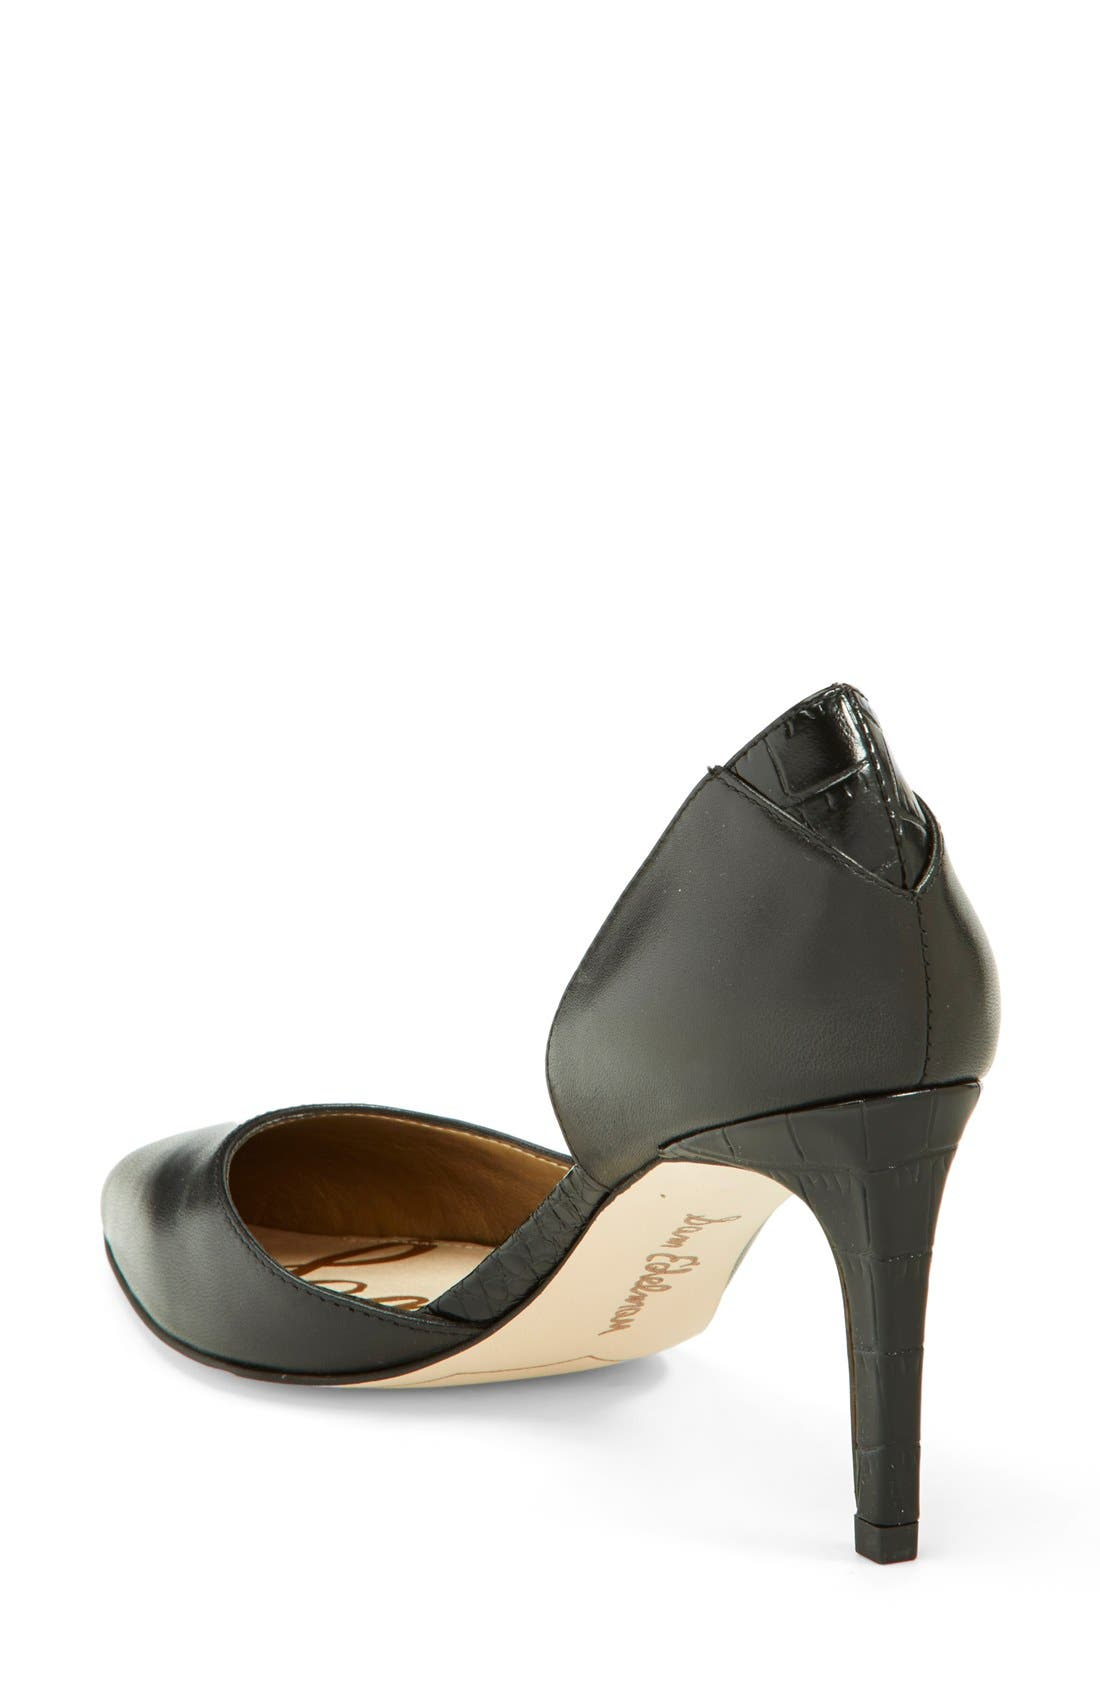 'Onyx' Half d'Orsay Pointy Toe Pump,                             Alternate thumbnail 2, color,                             001